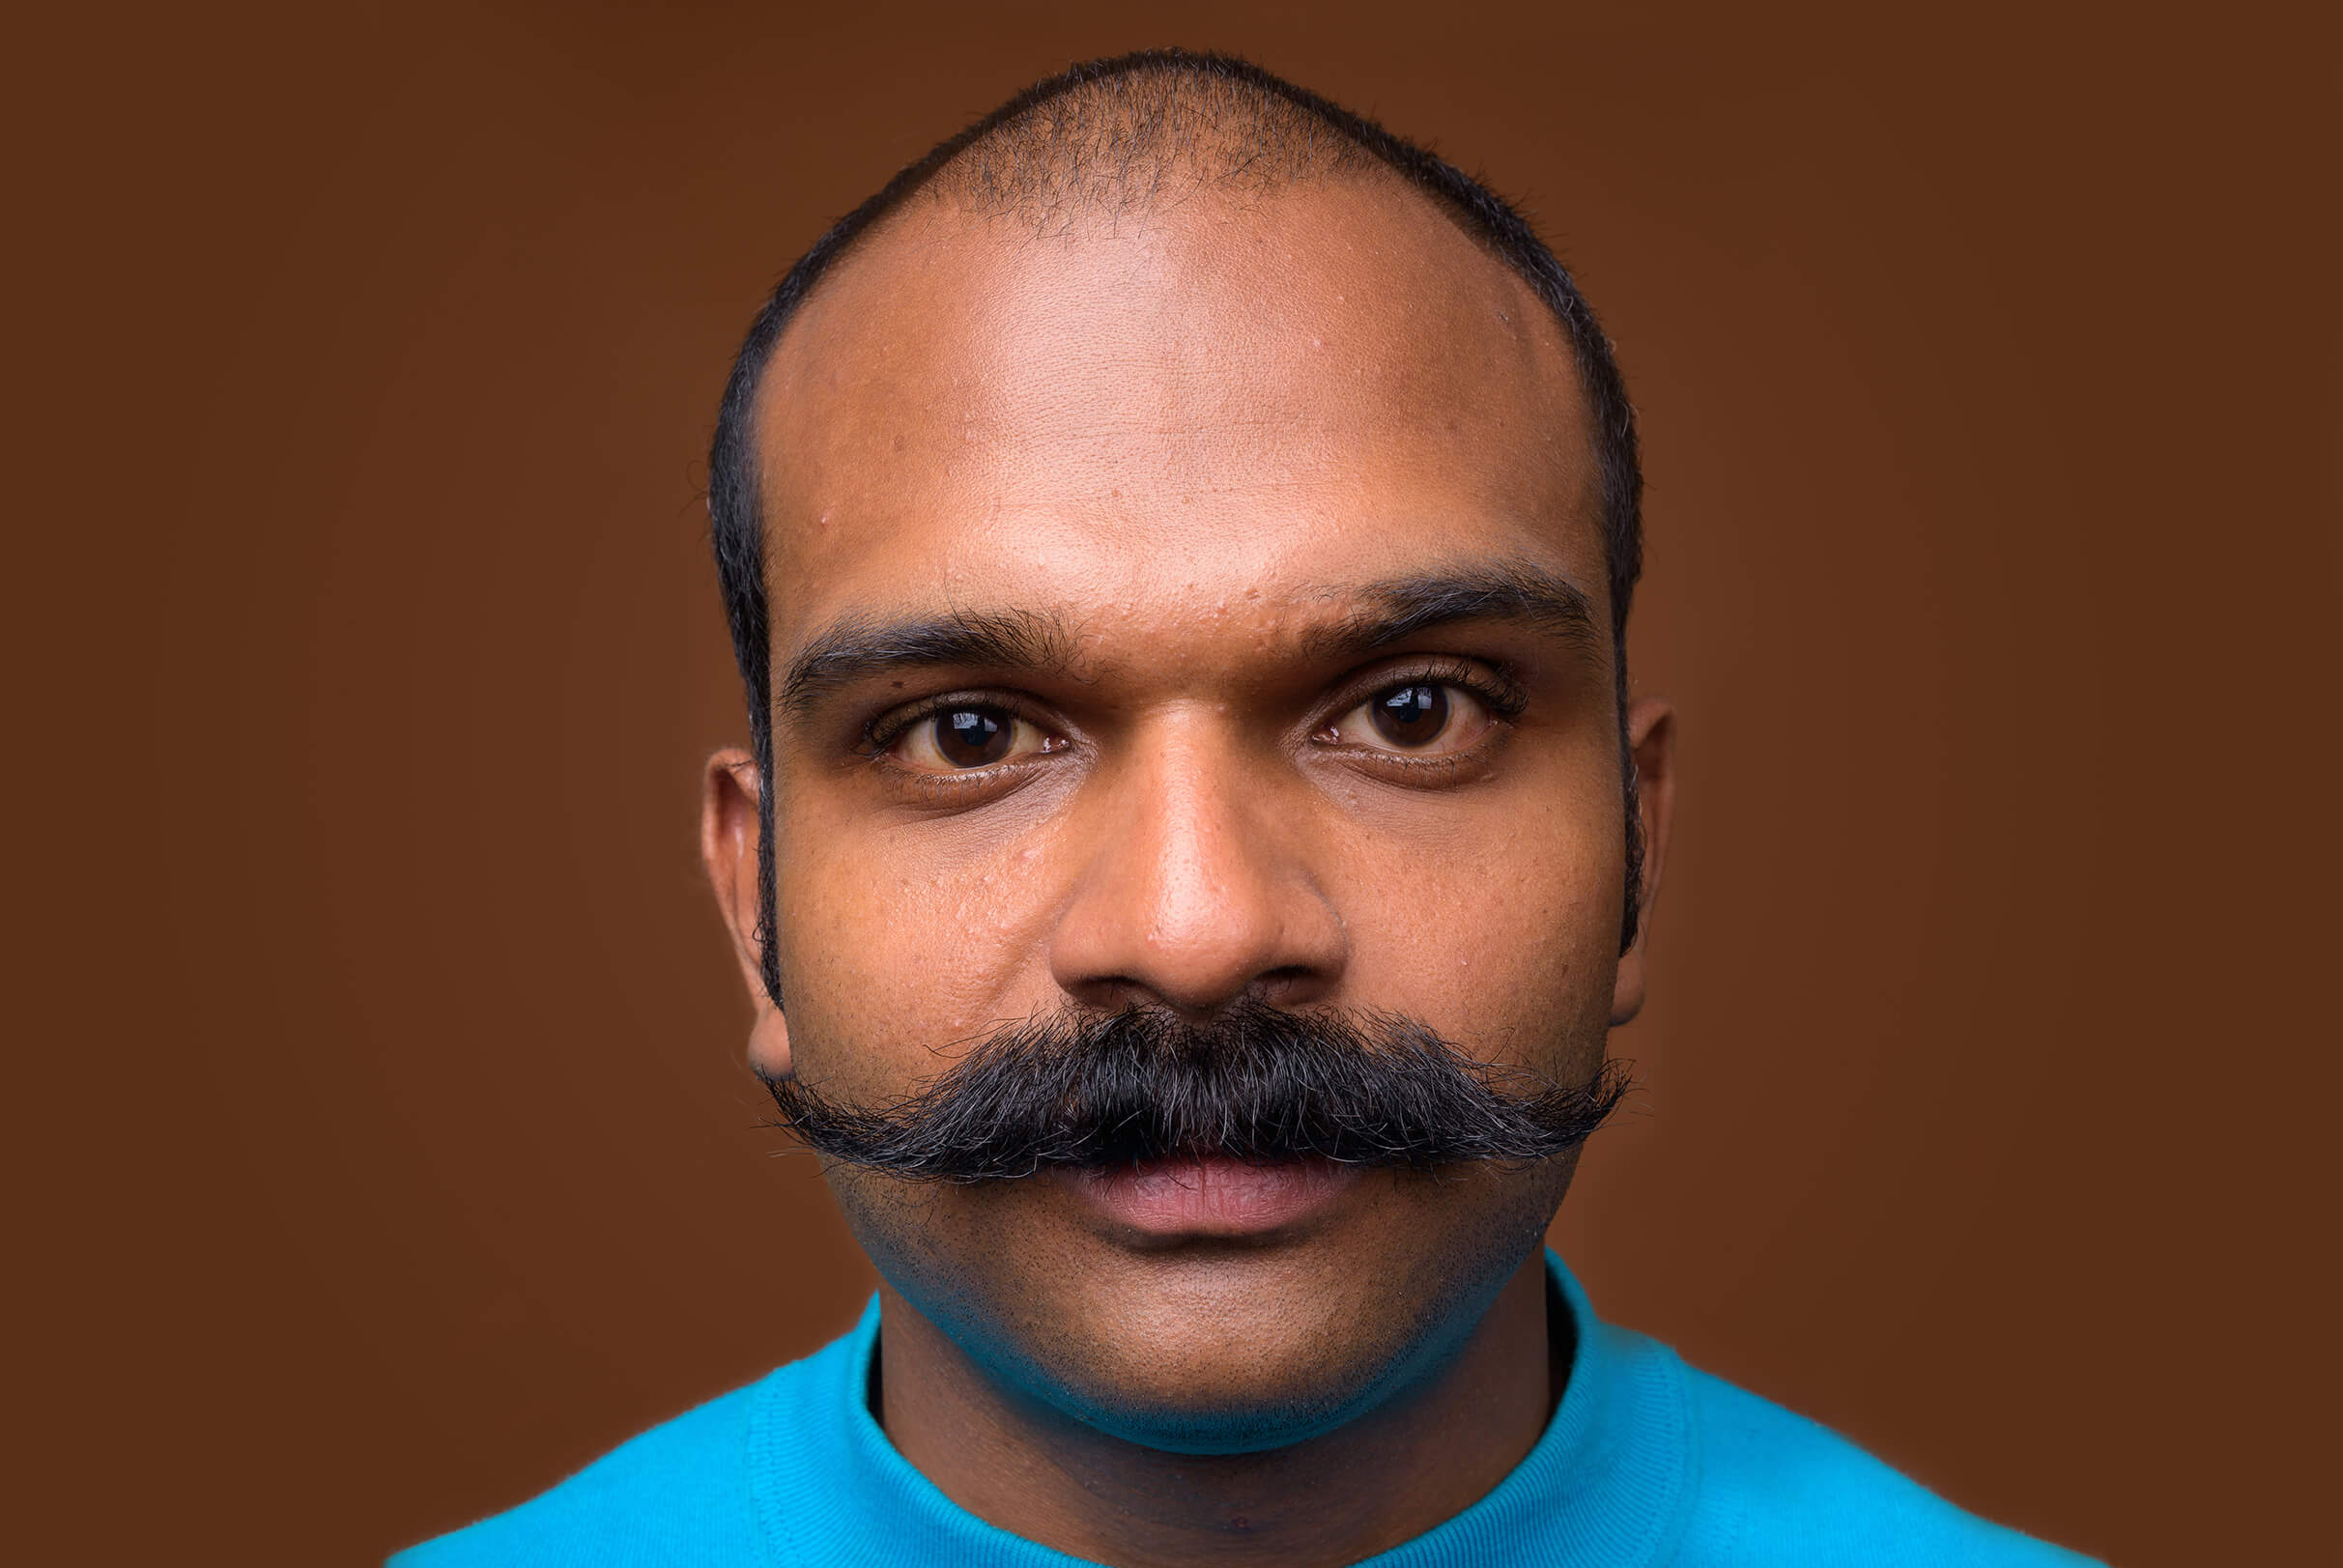 A headshot of a South Asian man with a handlebar style mustache and androgenic alopecia affecting his entire hairline